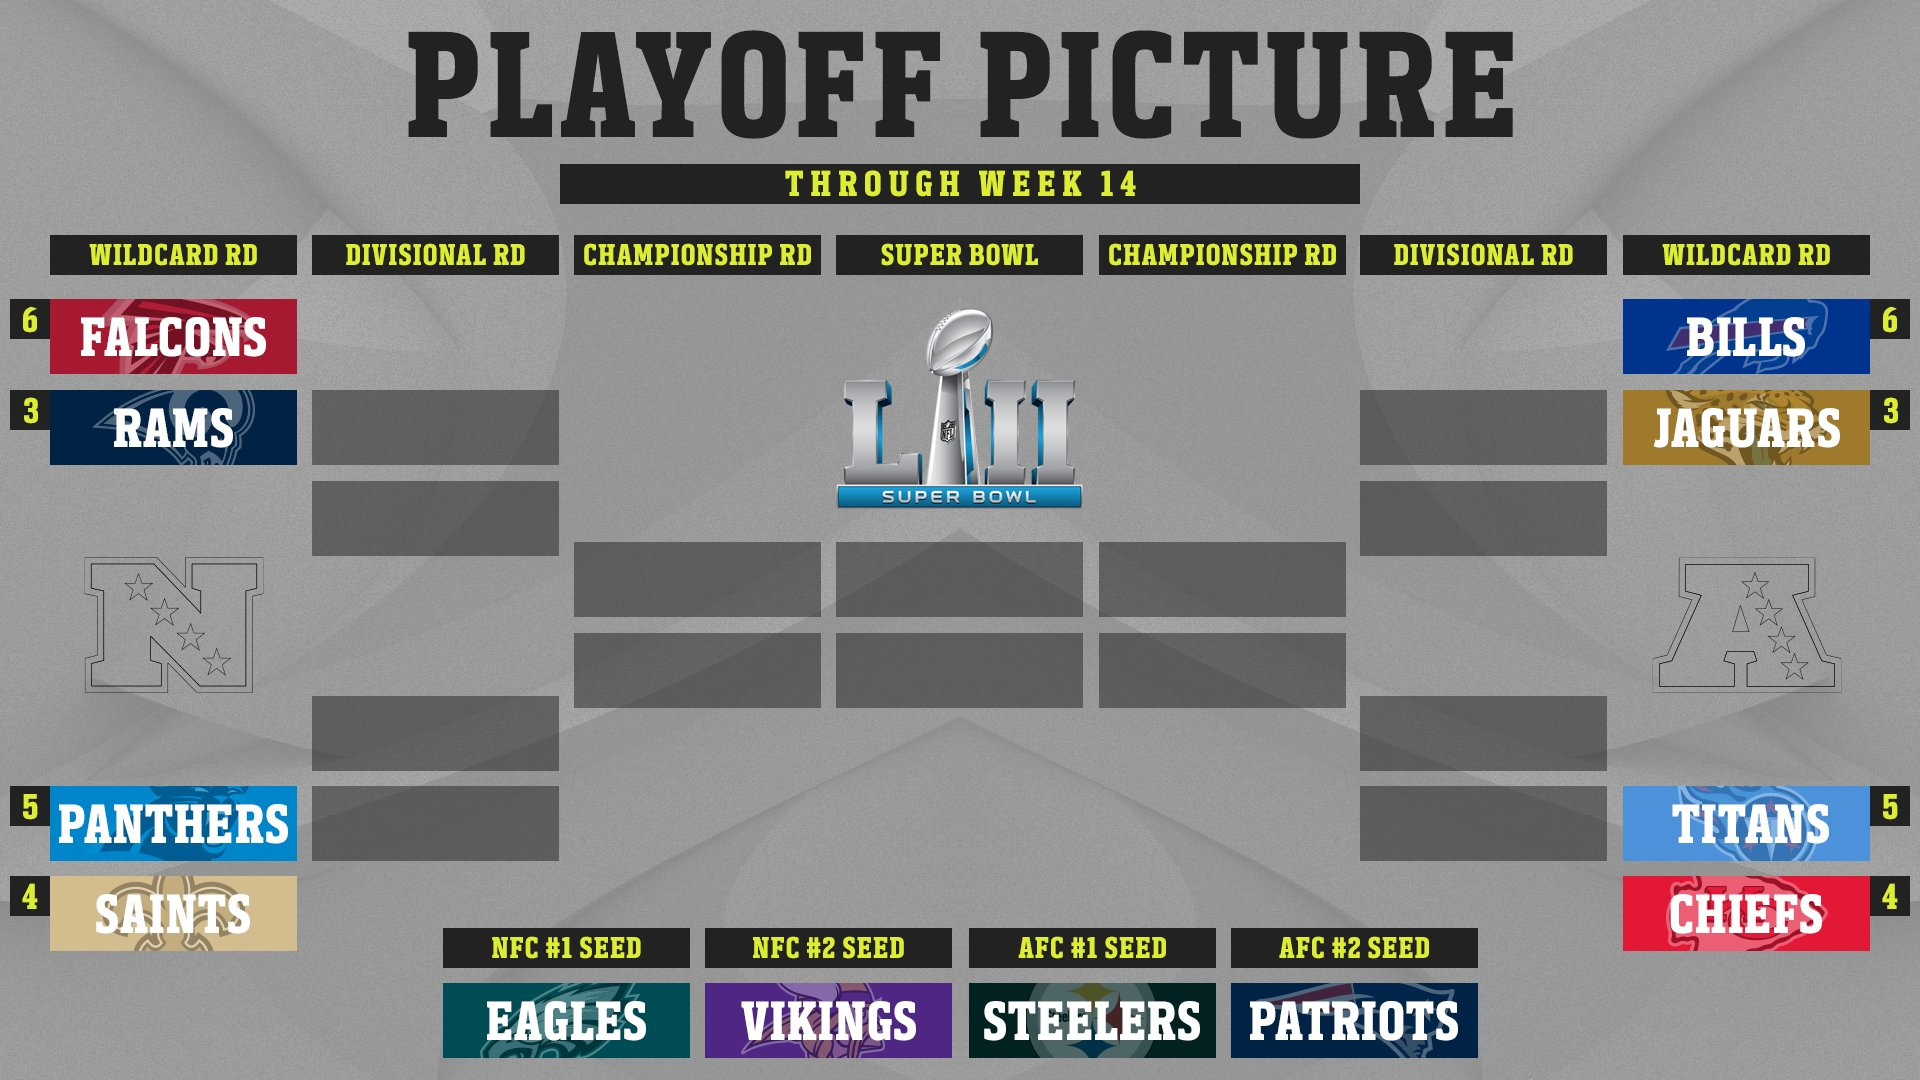 Through 14 weeks, the 2017 Playoff Picture! https://t.co/l0FFYrTzY9 https://t.co/43aY0dLNYH